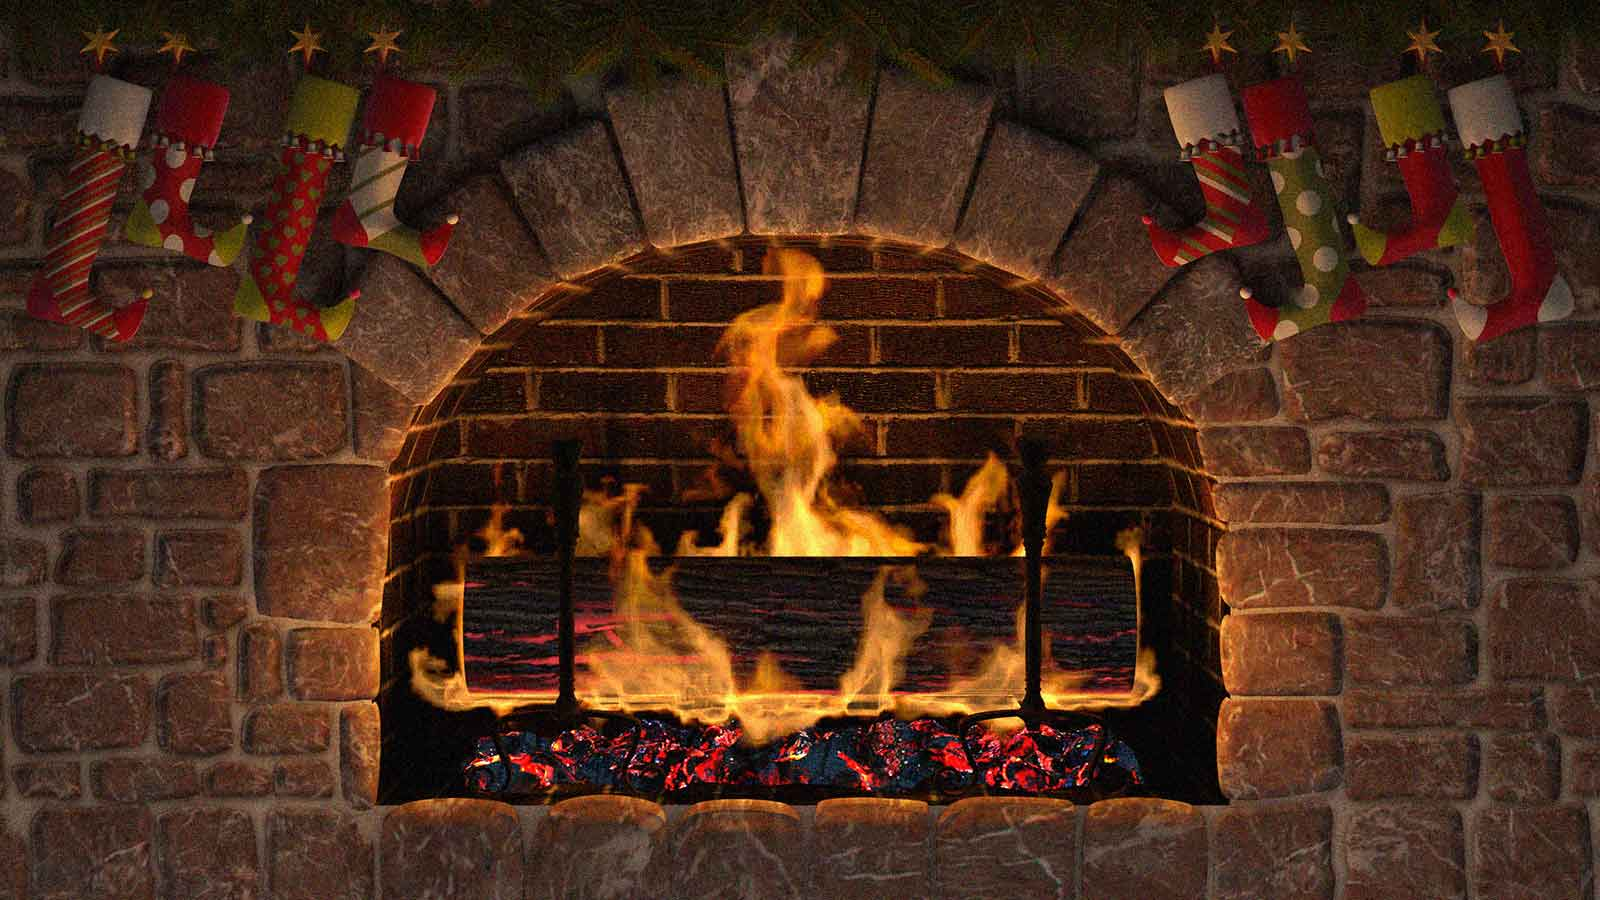 A yule log burning in a brick fireplace with stockings hung from the mantle.